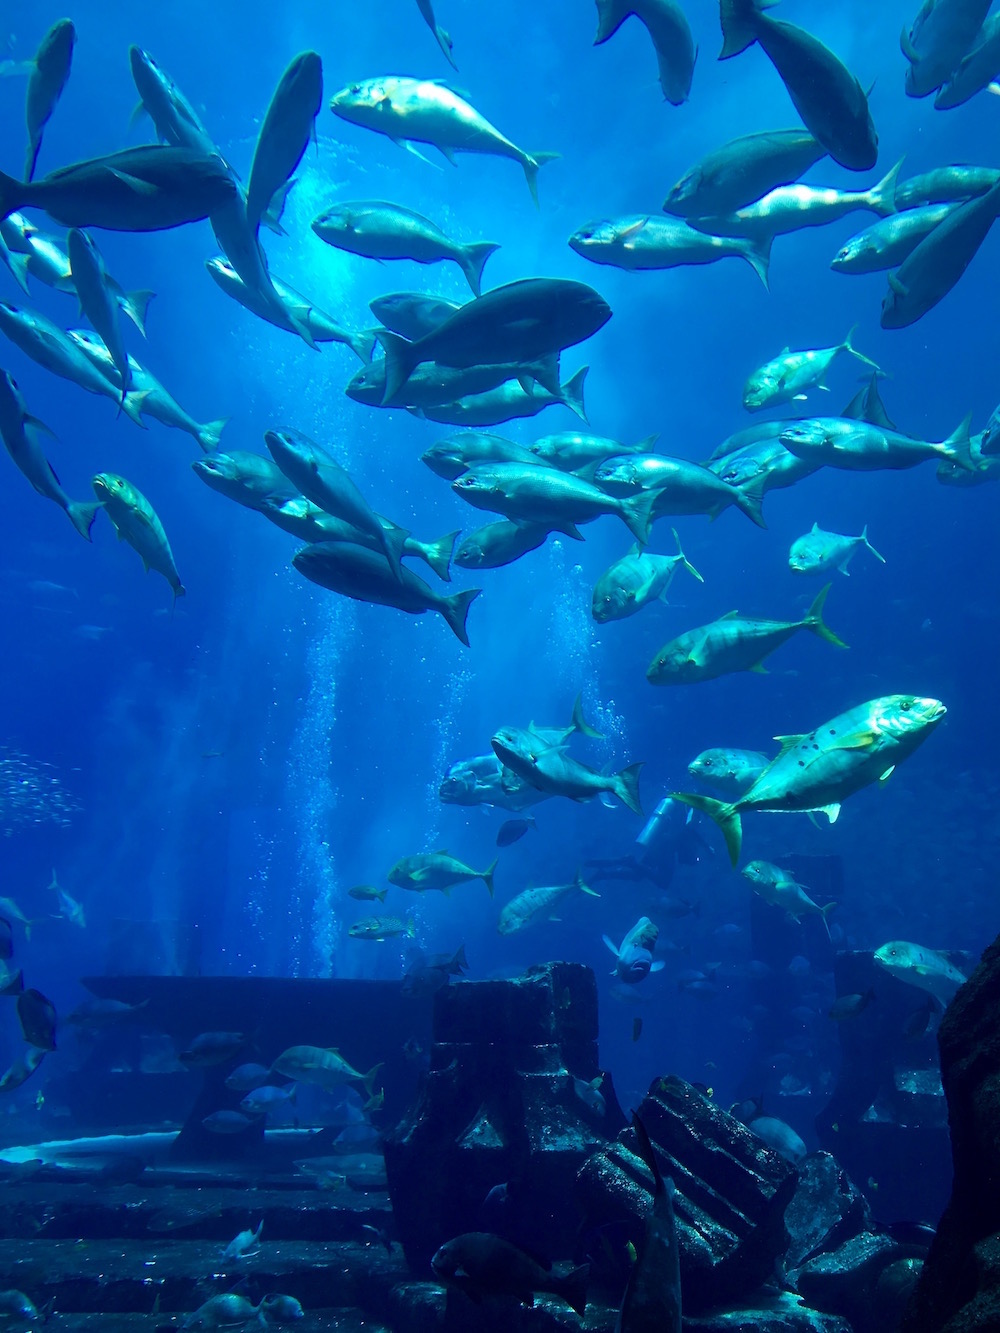 atlantis the palm dubai aquarium